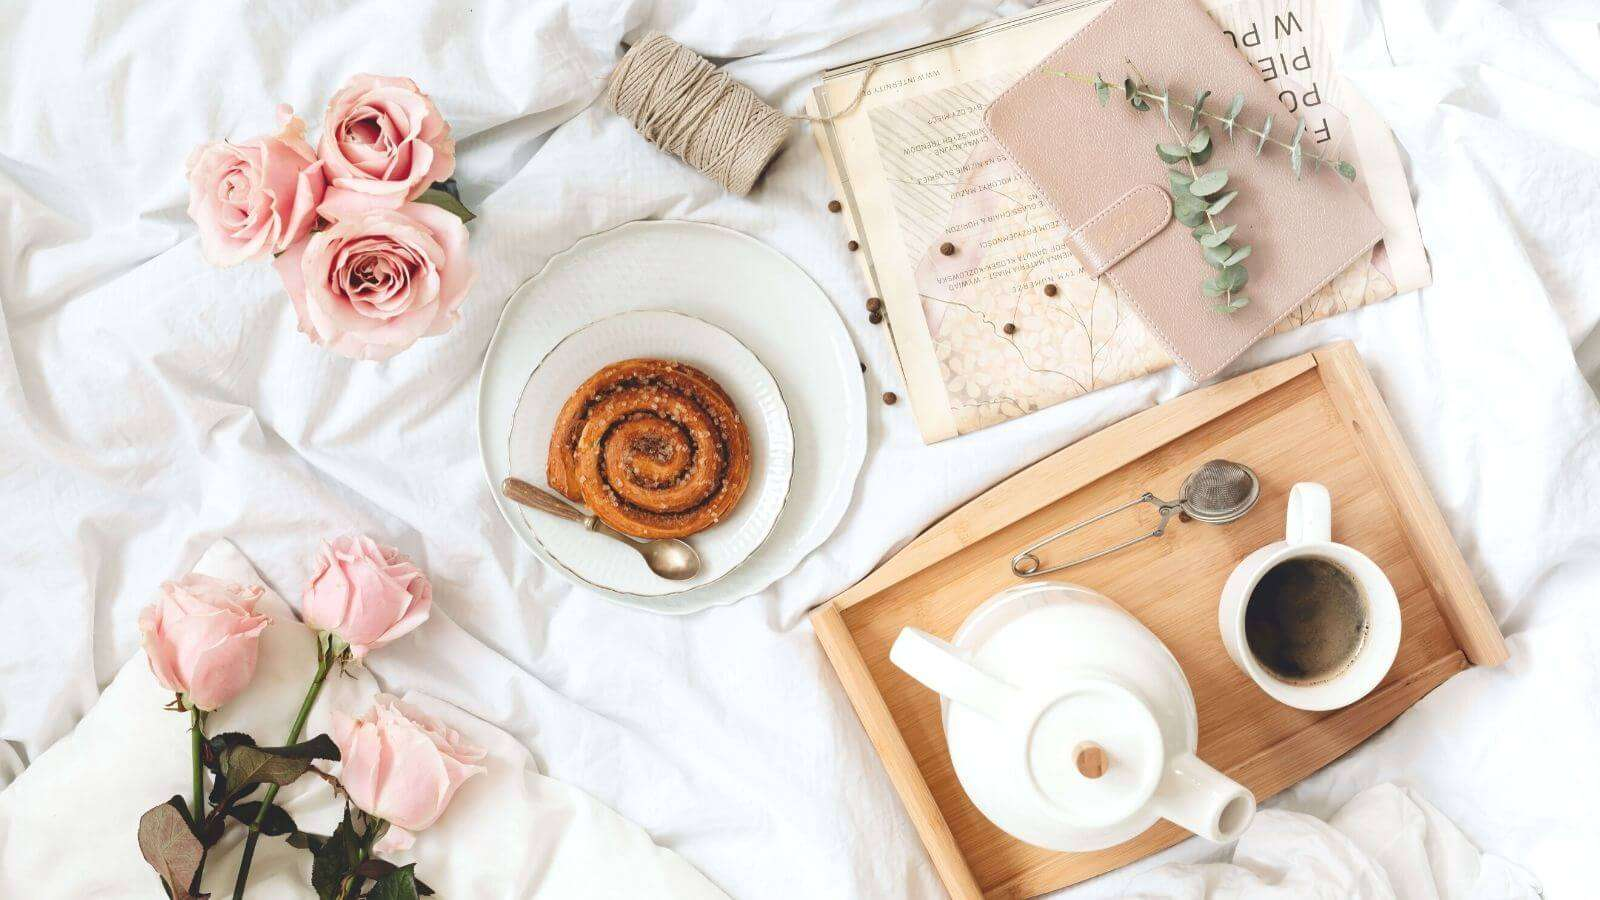 Set Up Your Perfect Morning Routine (+Morning Routine Ideas)